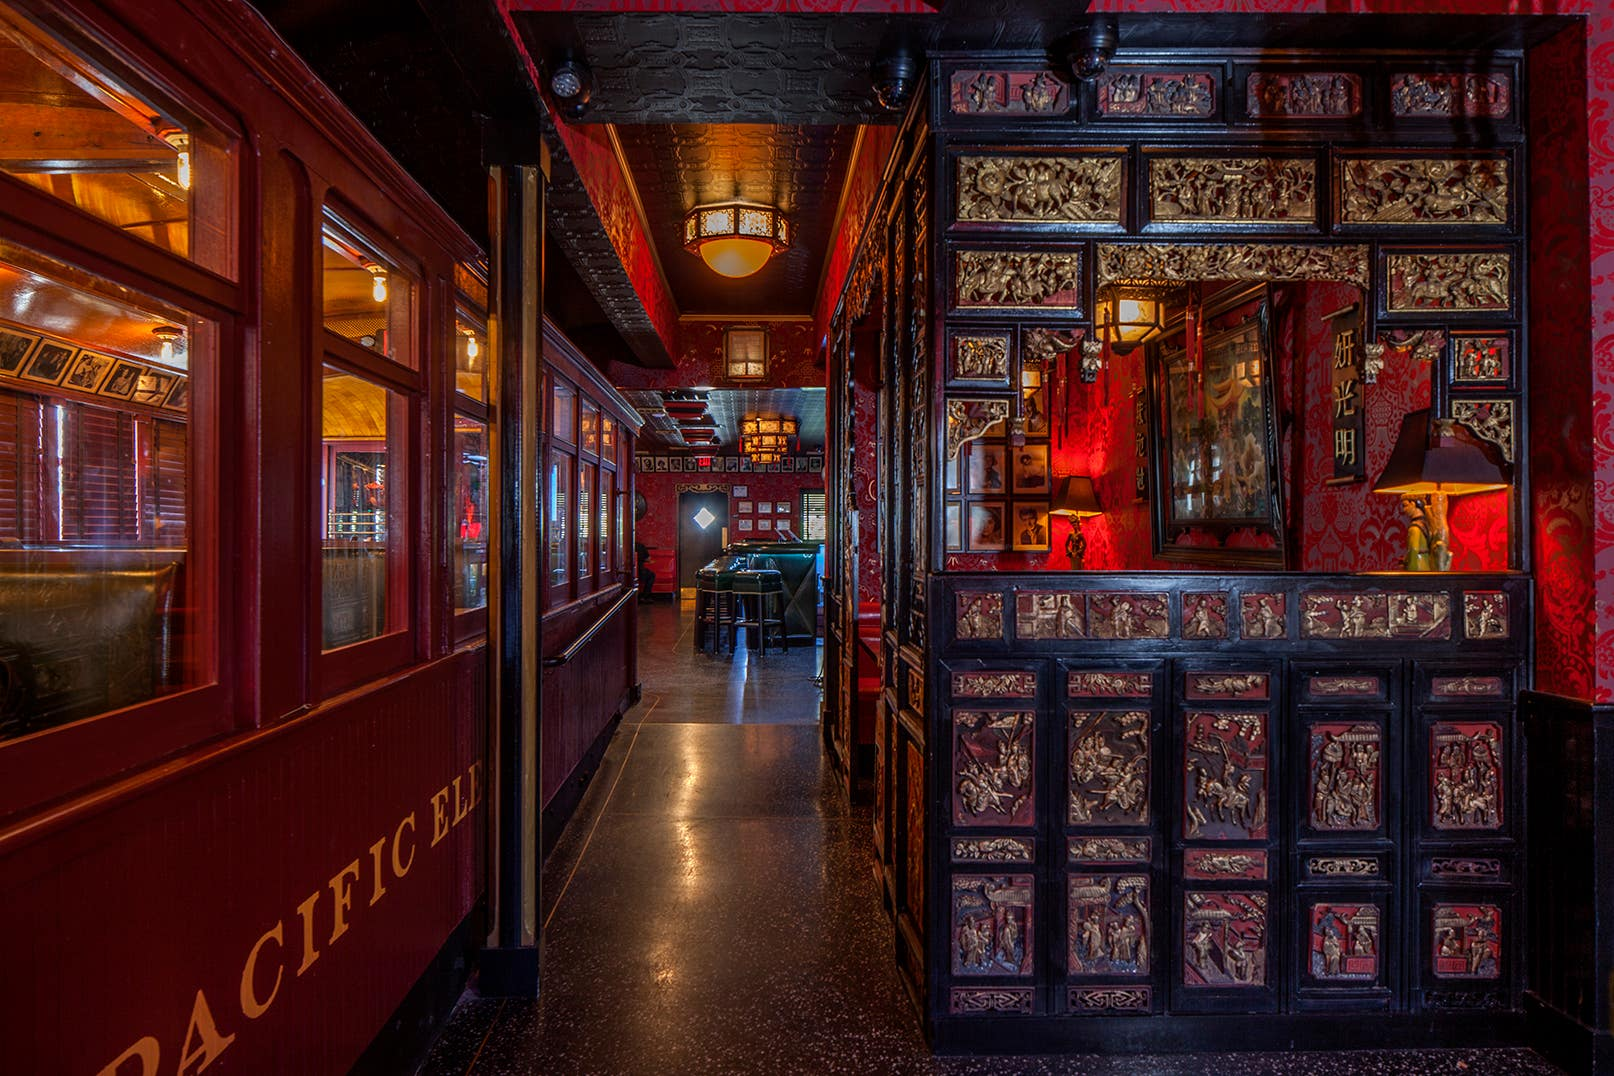 Pacific Electric Red Car trolley and chinoiserie booth at the Formosa Cafe